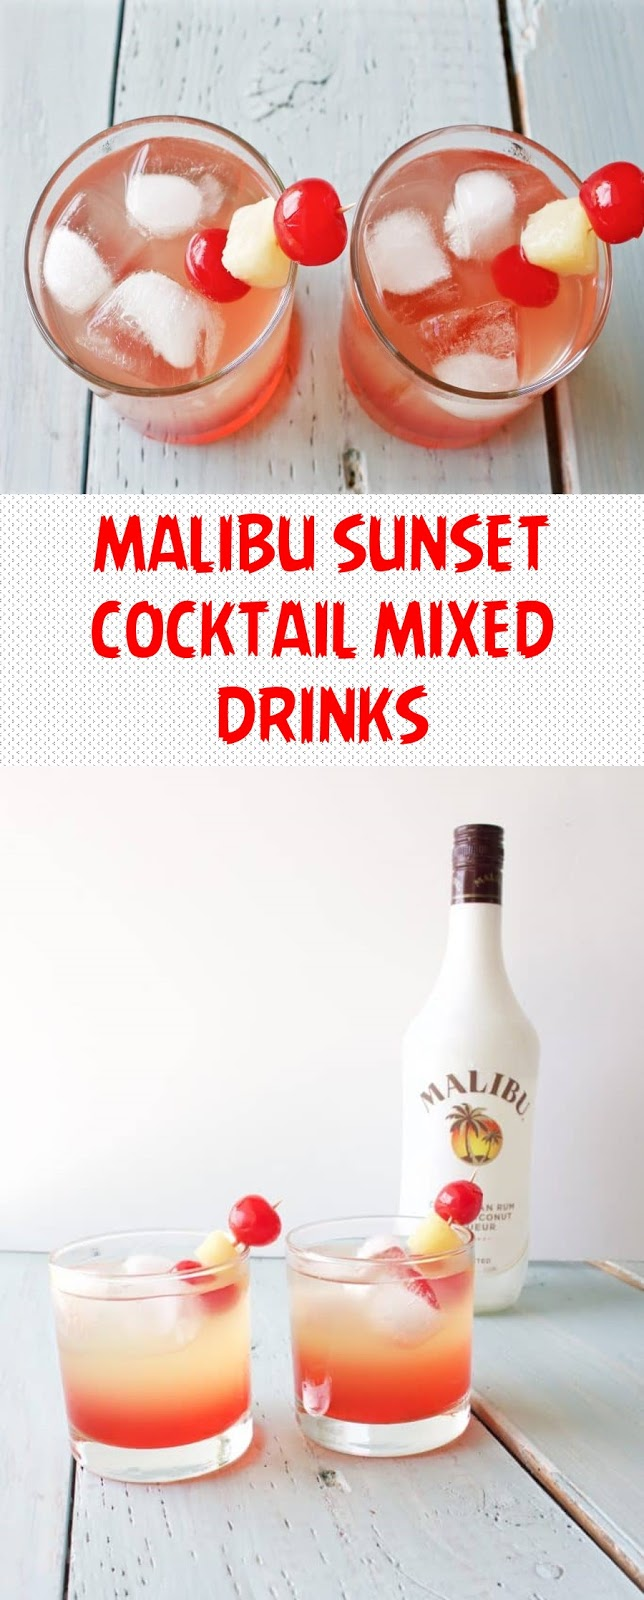 MALIBU SUNSET COCKTAIL MIXED DRINKS